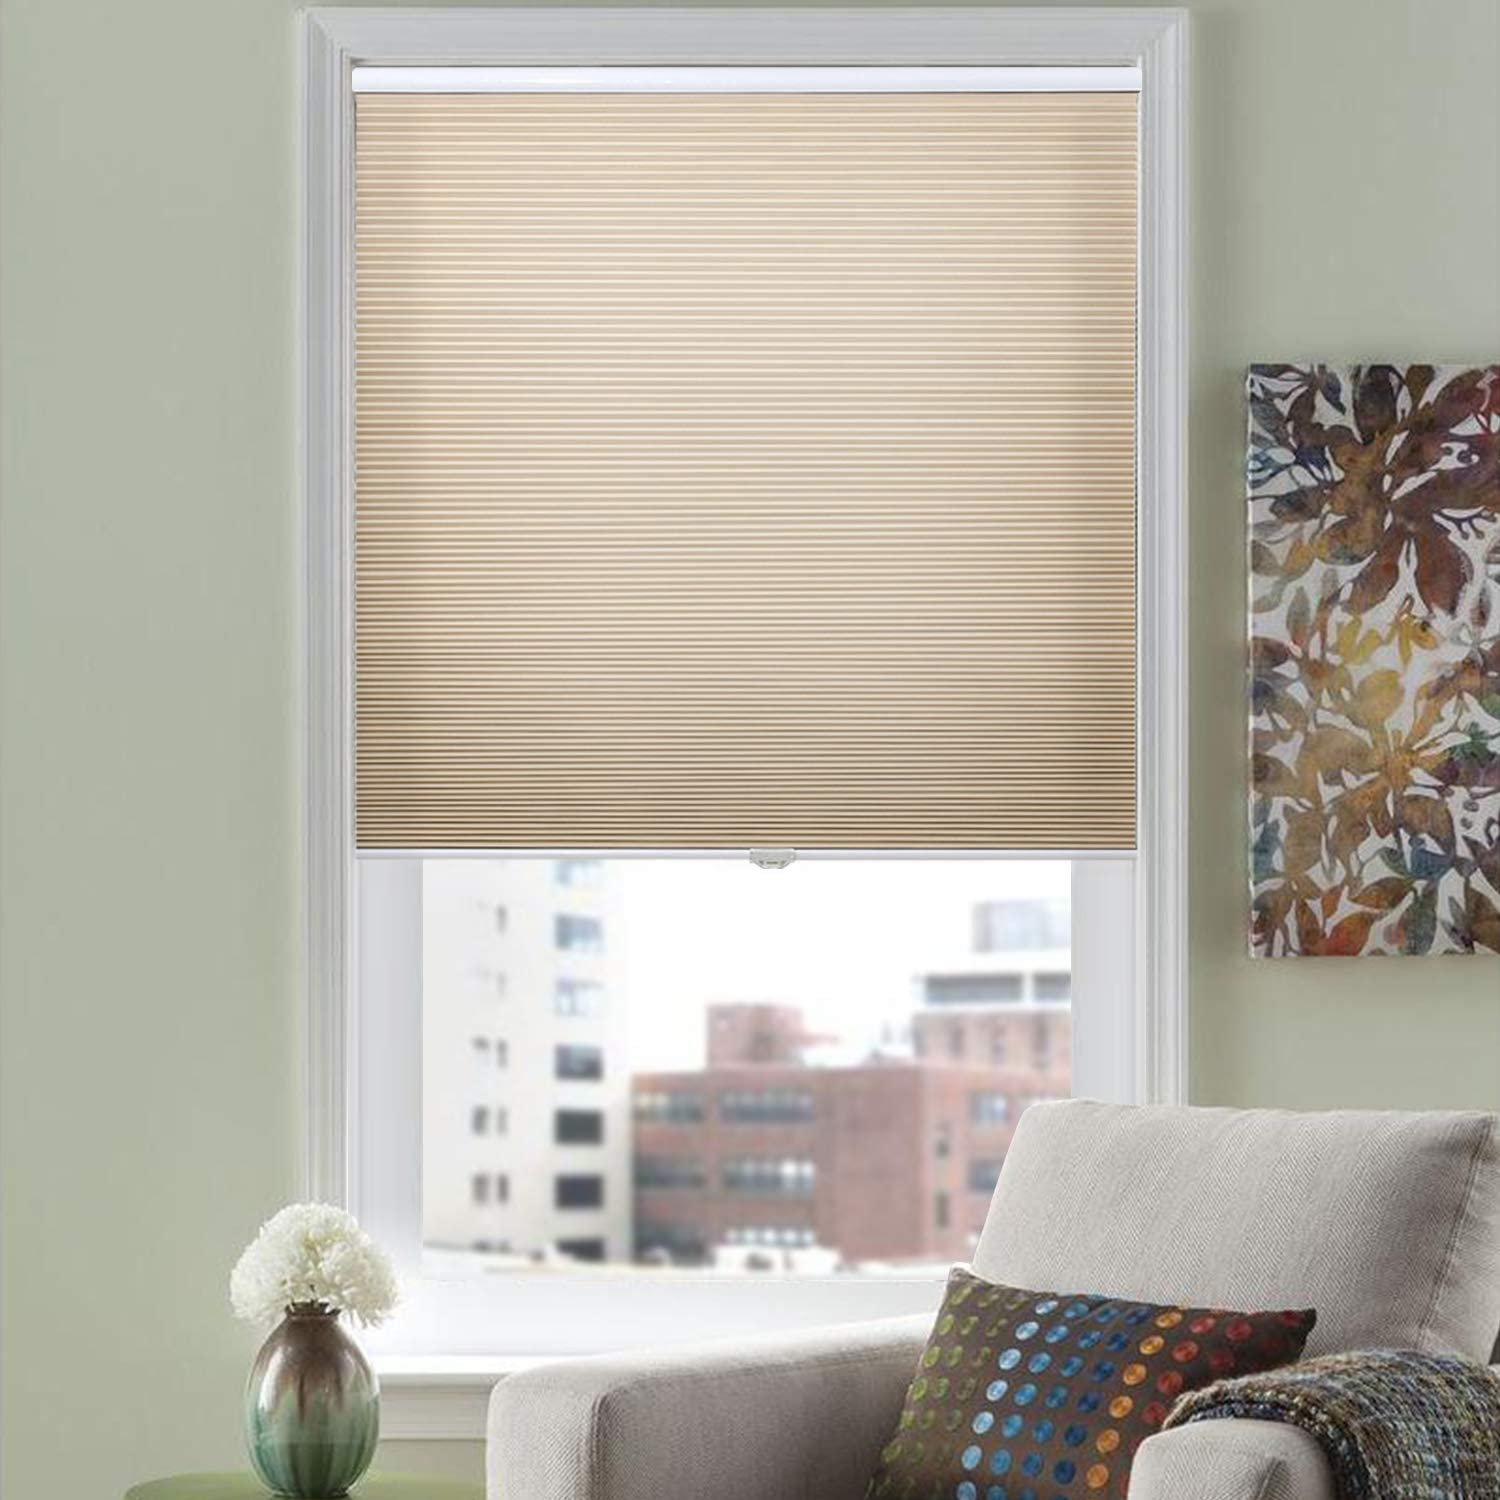 HOMEDEMO Cellular Shades Cordless Window Blinds and Light Filtering Shades, 23